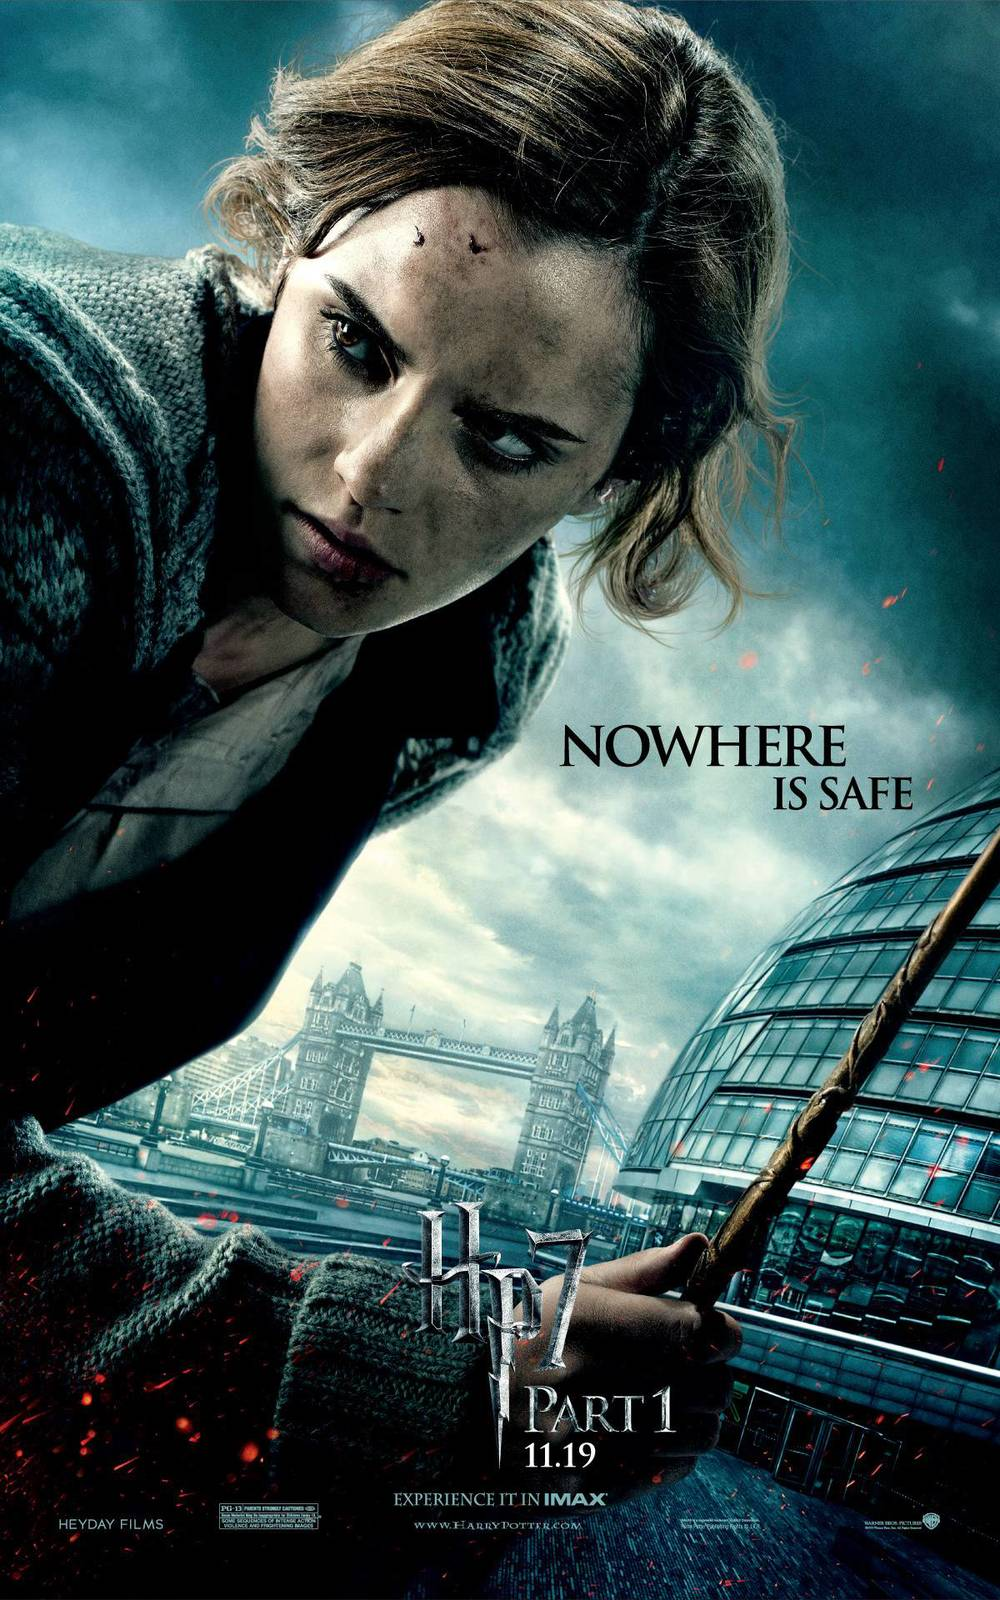 "<a href=""http://www.totallyemmawatson.com/gallery/acting-career/harry-potter-and-the-deathly-hallows-part-1/posters"">Posters</a>"